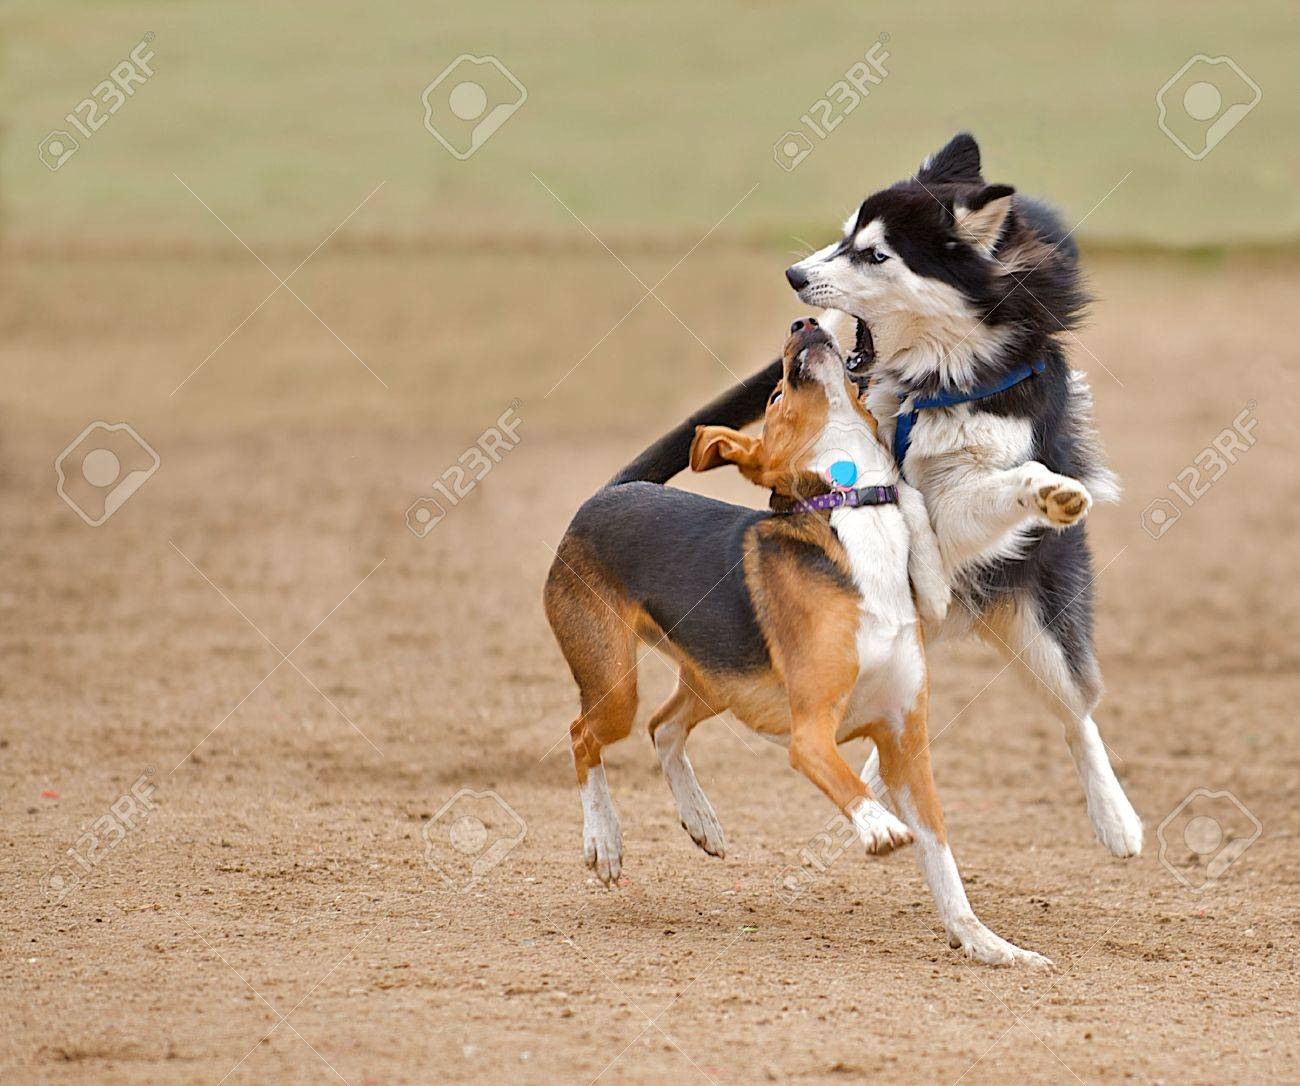 Siberian Husky play fighting with a beagle mix while running in the park. Stock Photo - 6253111